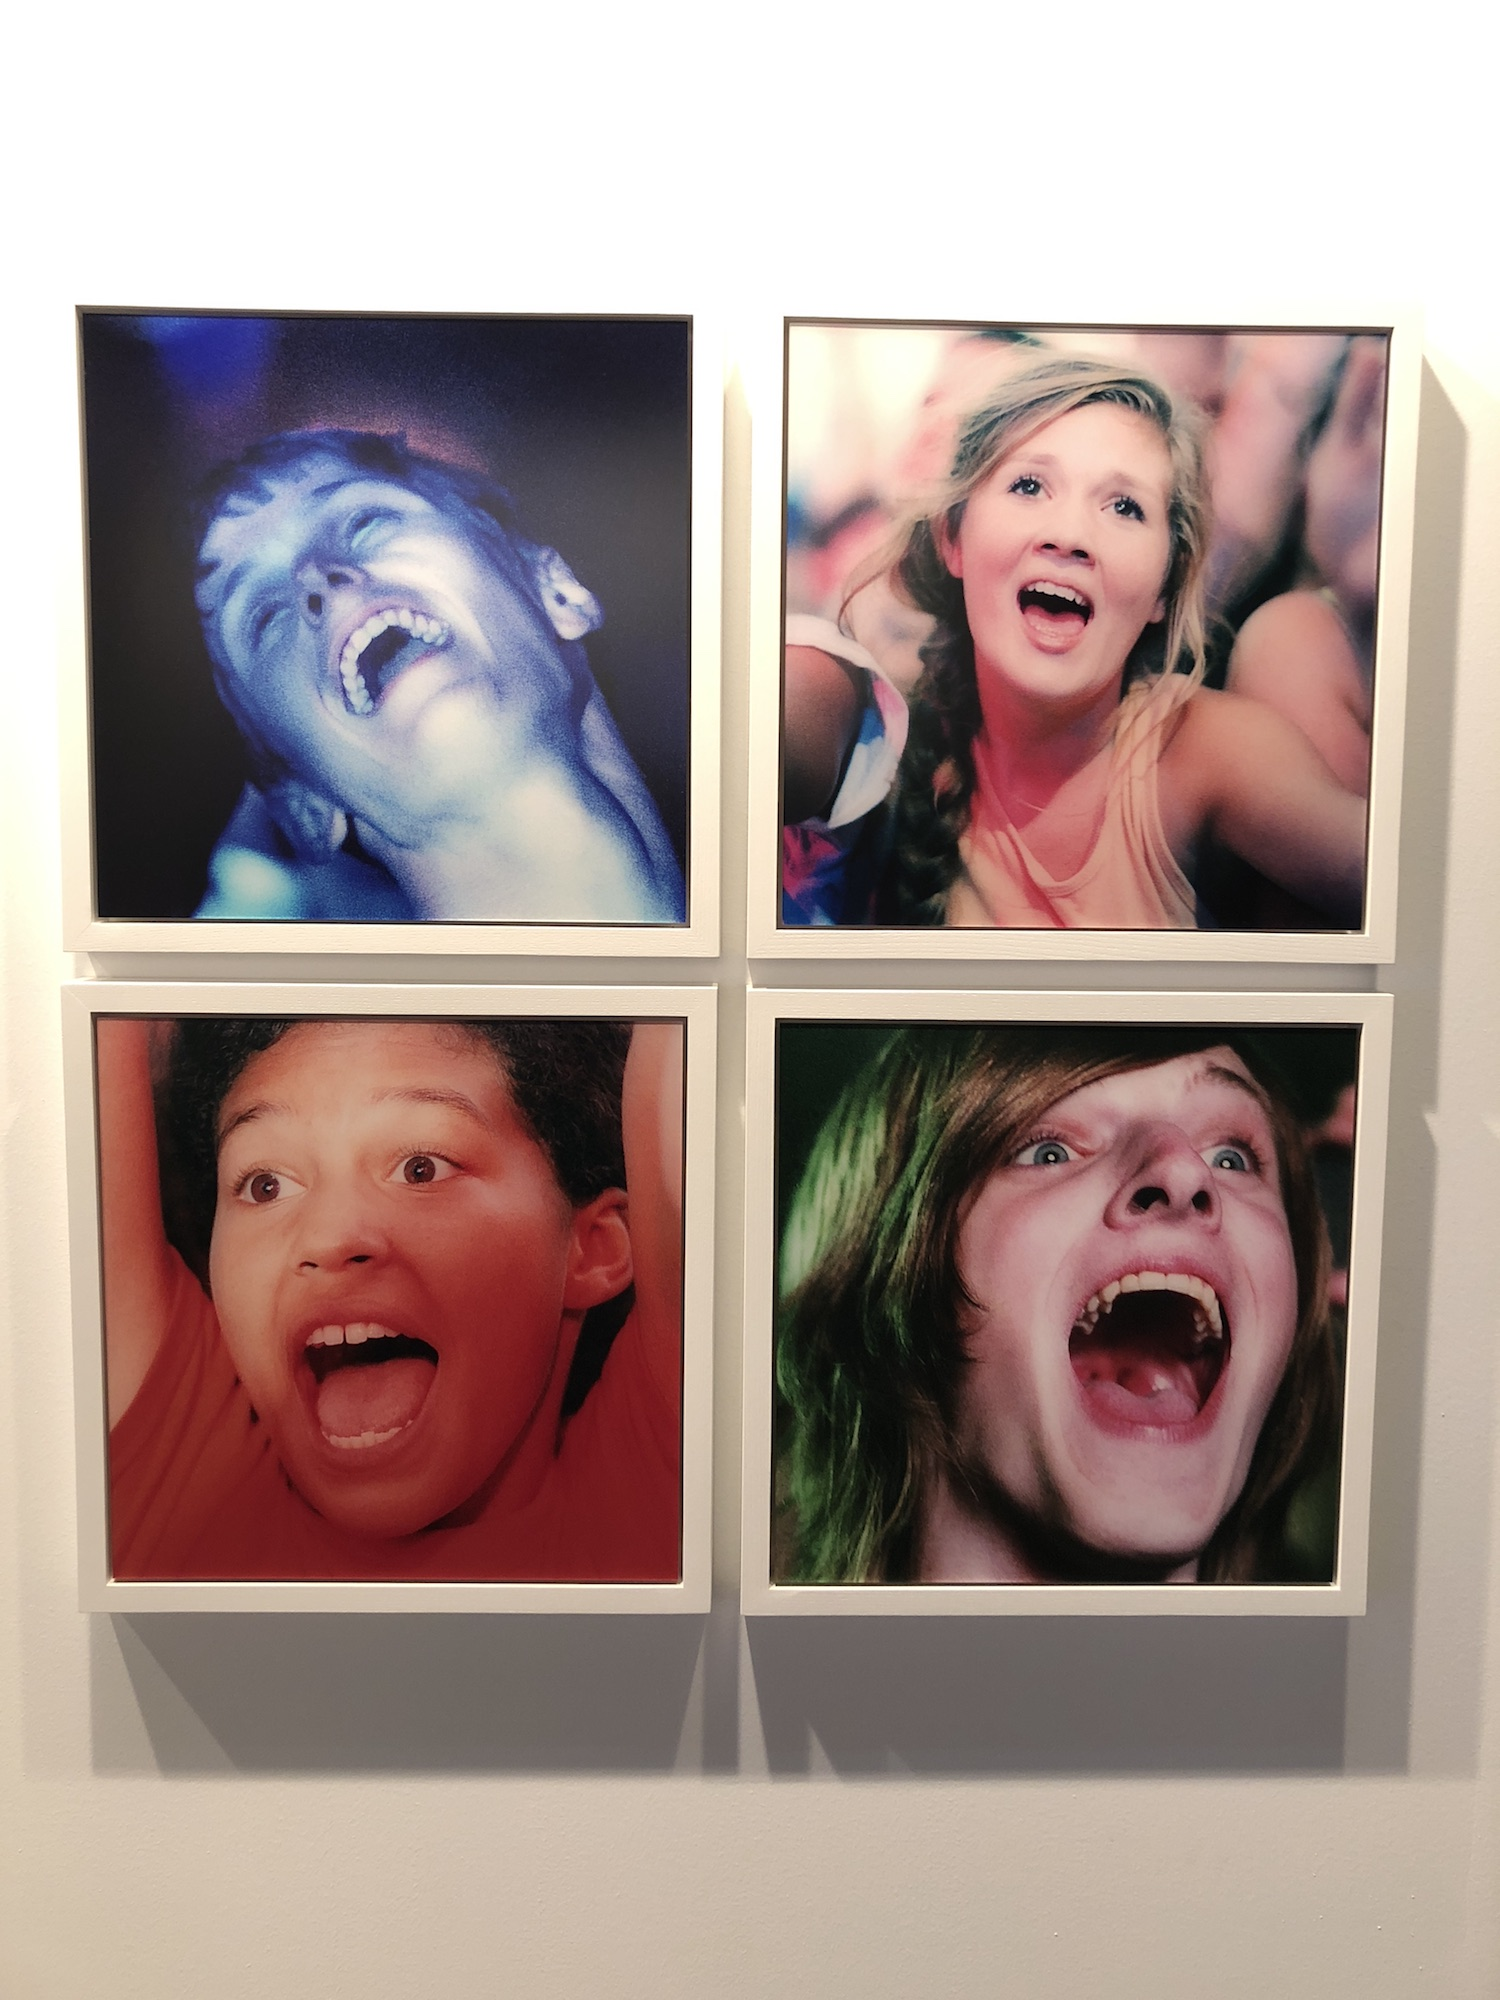 You and My Friends - Ryan McGinley